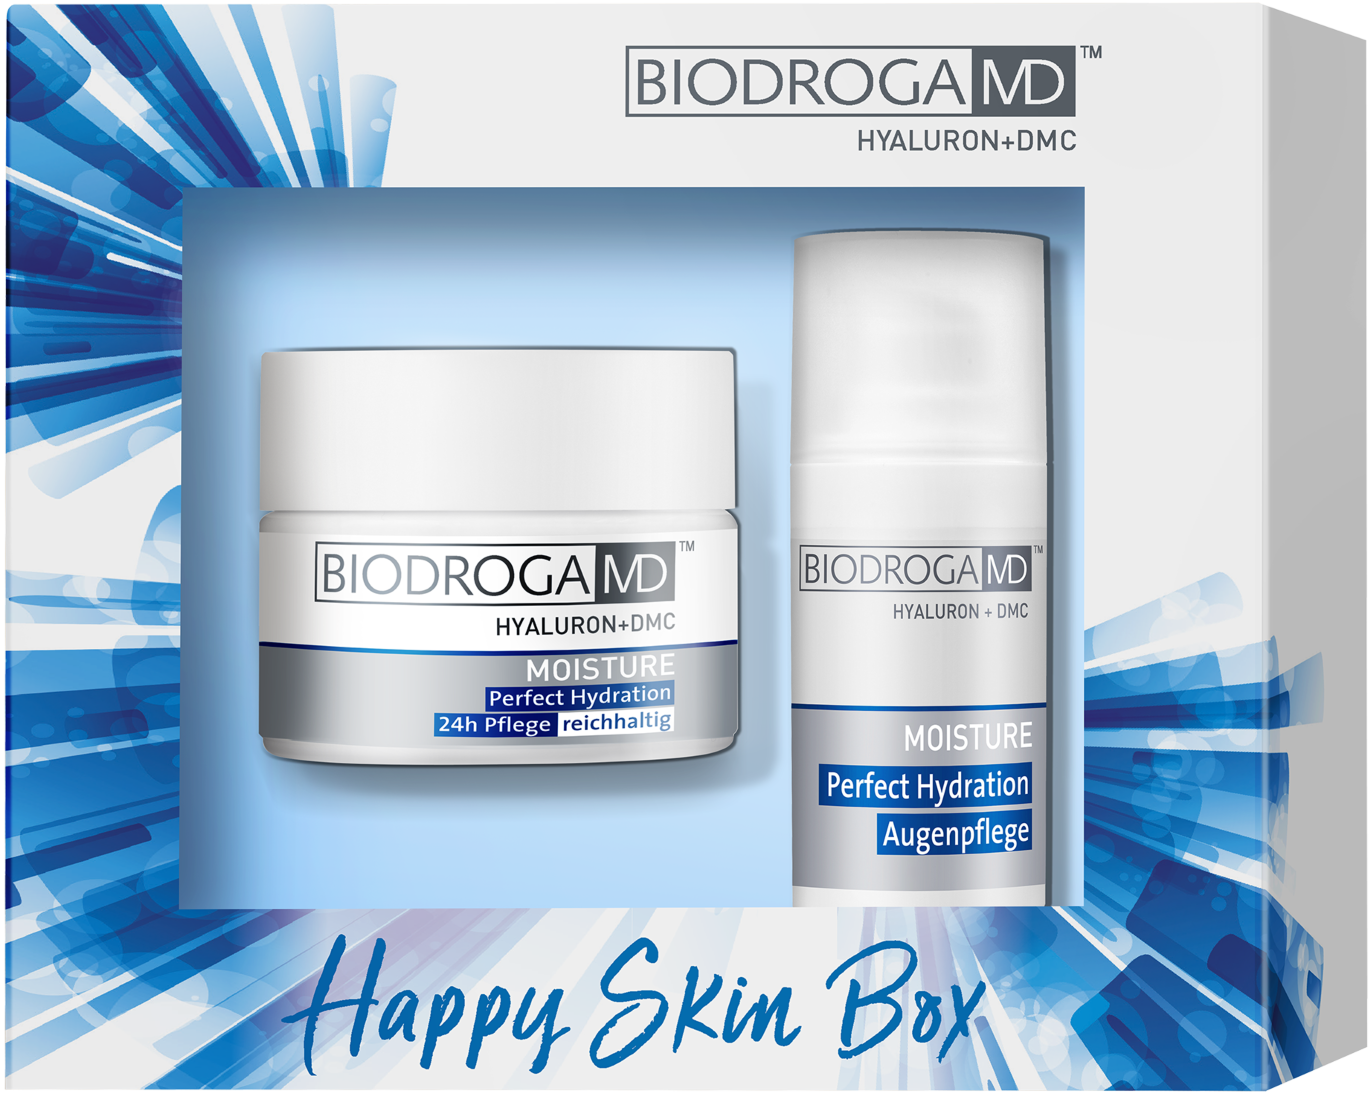 Happy Skin Box